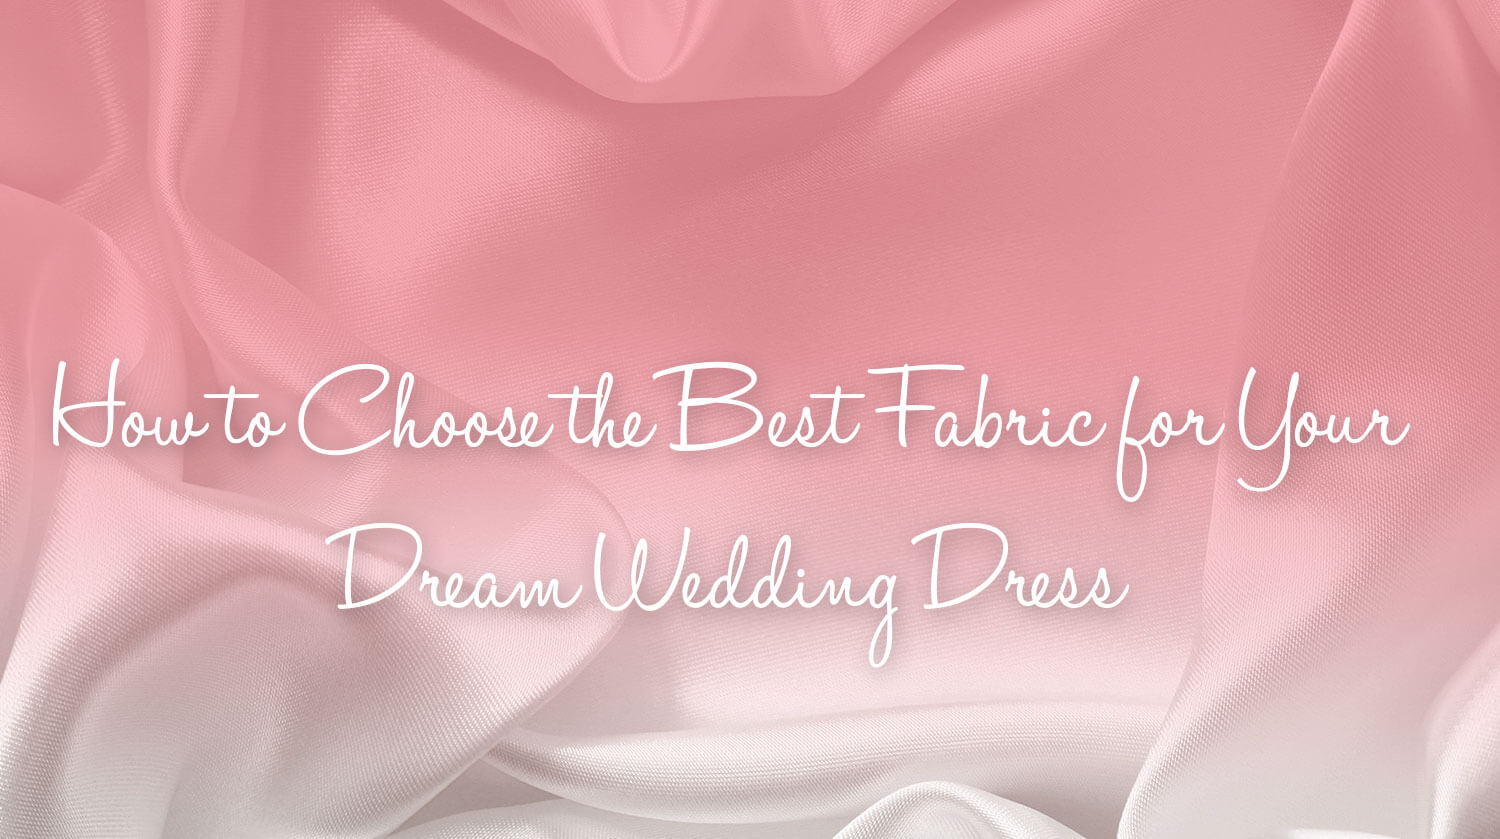 How to Choose the Best Fabric for Your Dream Wedding Dress